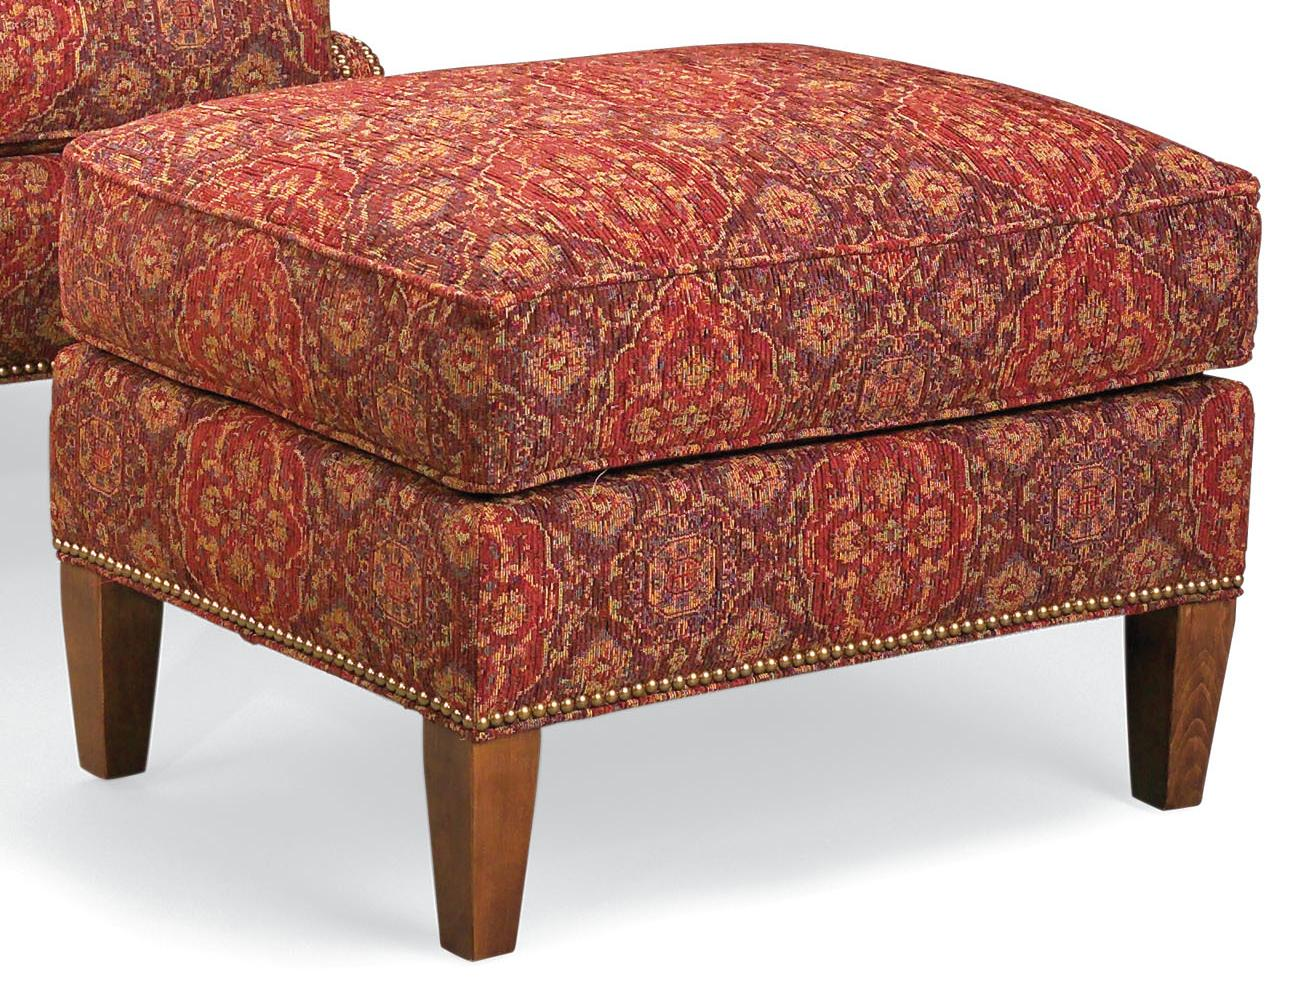 Fairfield Chairs Ottoman - Item Number: 1491-20